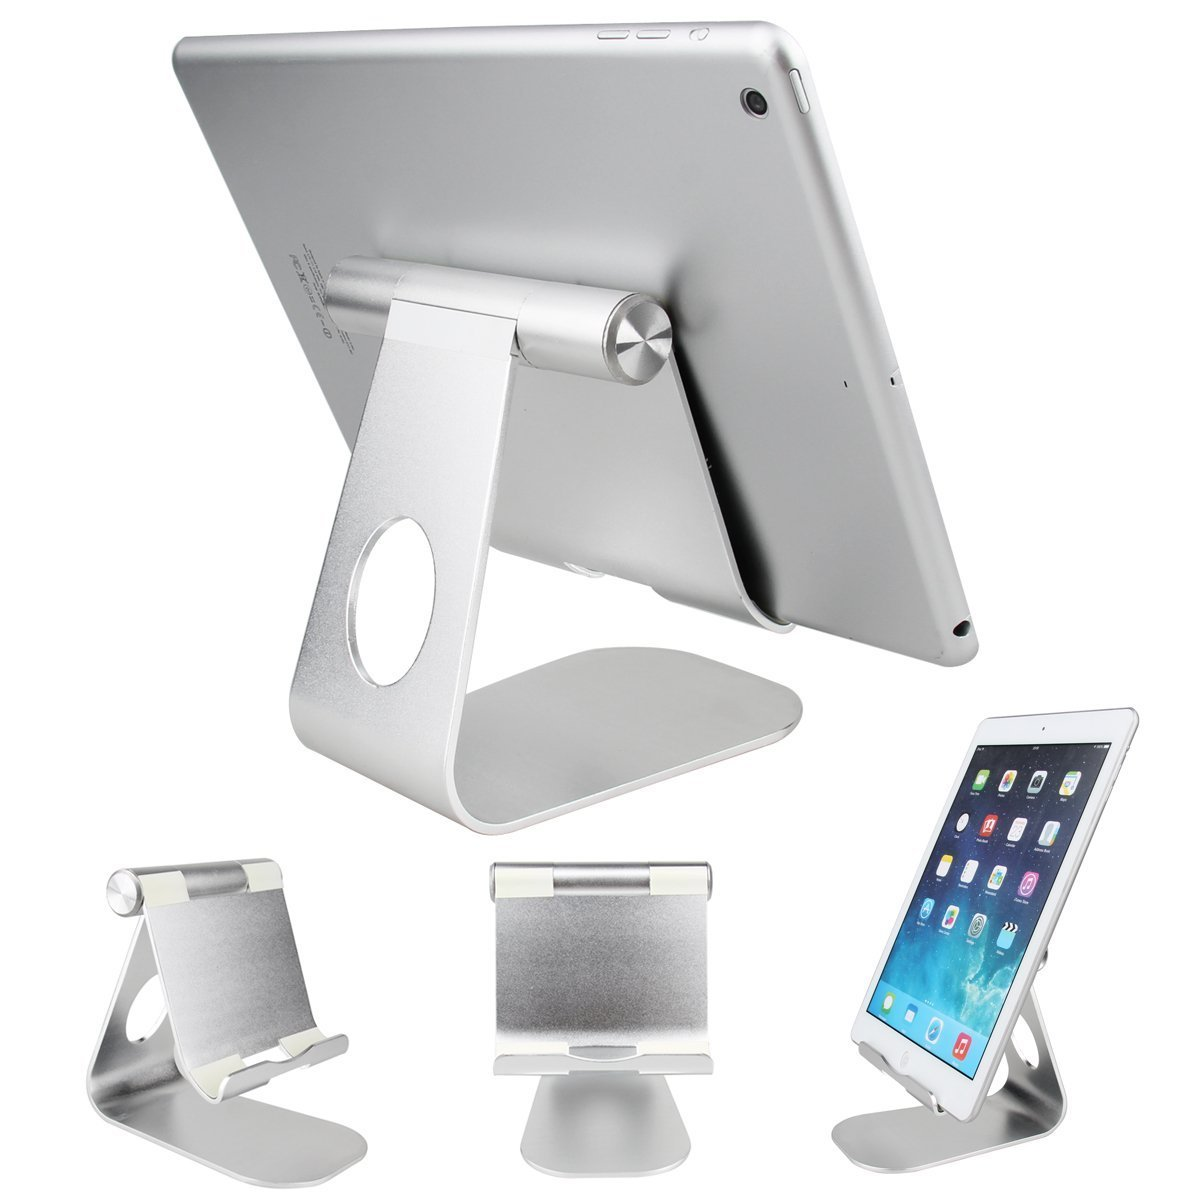 Oenbopo iPad Pro Tablet Holder Stand 360° Rotatable Aluminum Alloy Desktop Holder Tablet Stand for iPad Pro 12.9